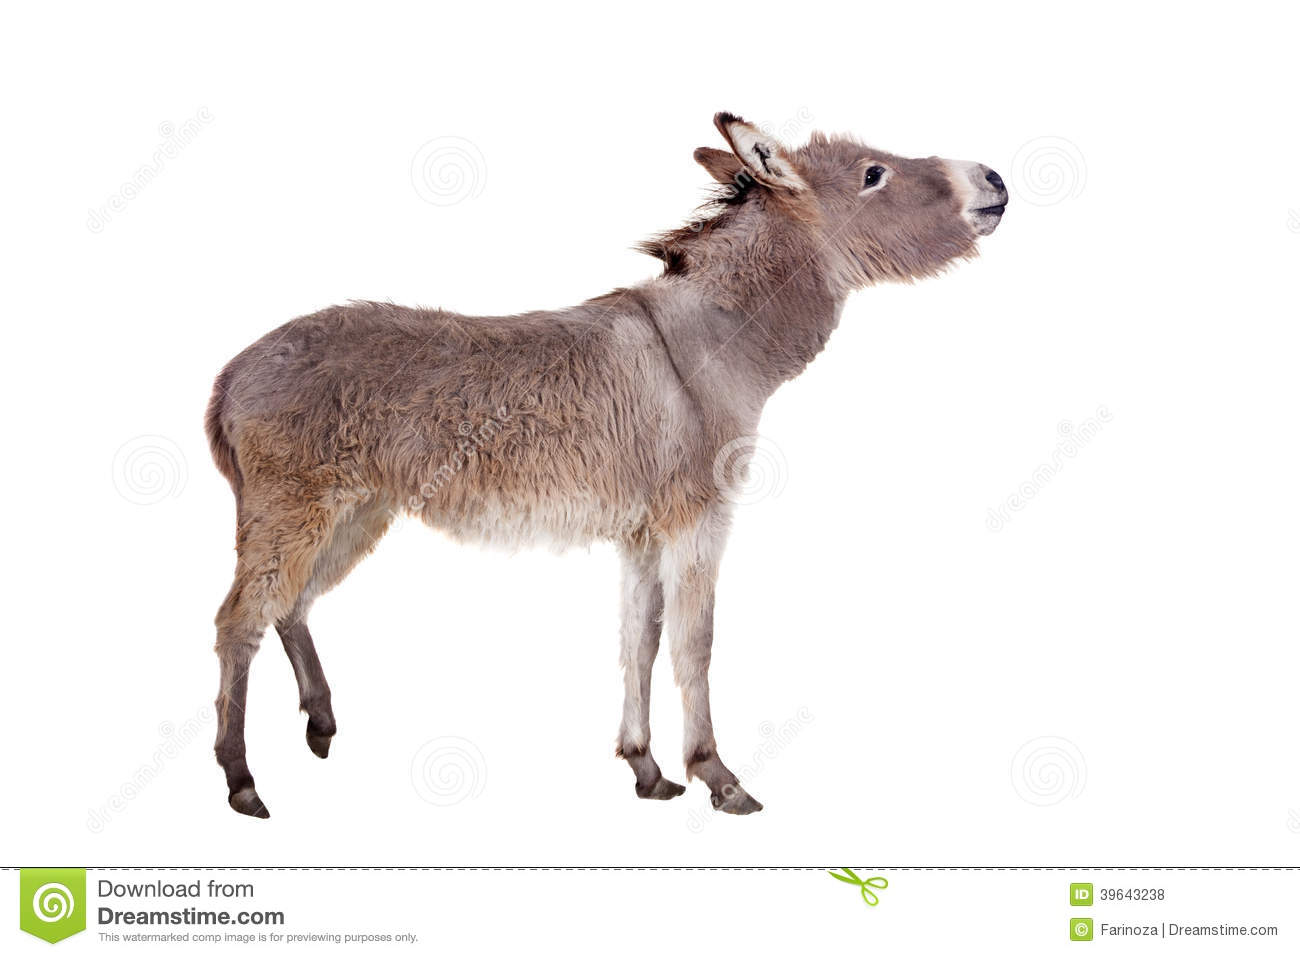 Cute Photos Hd Wallpaper Donkey On White Stock Photo Image Of Graze Mammal